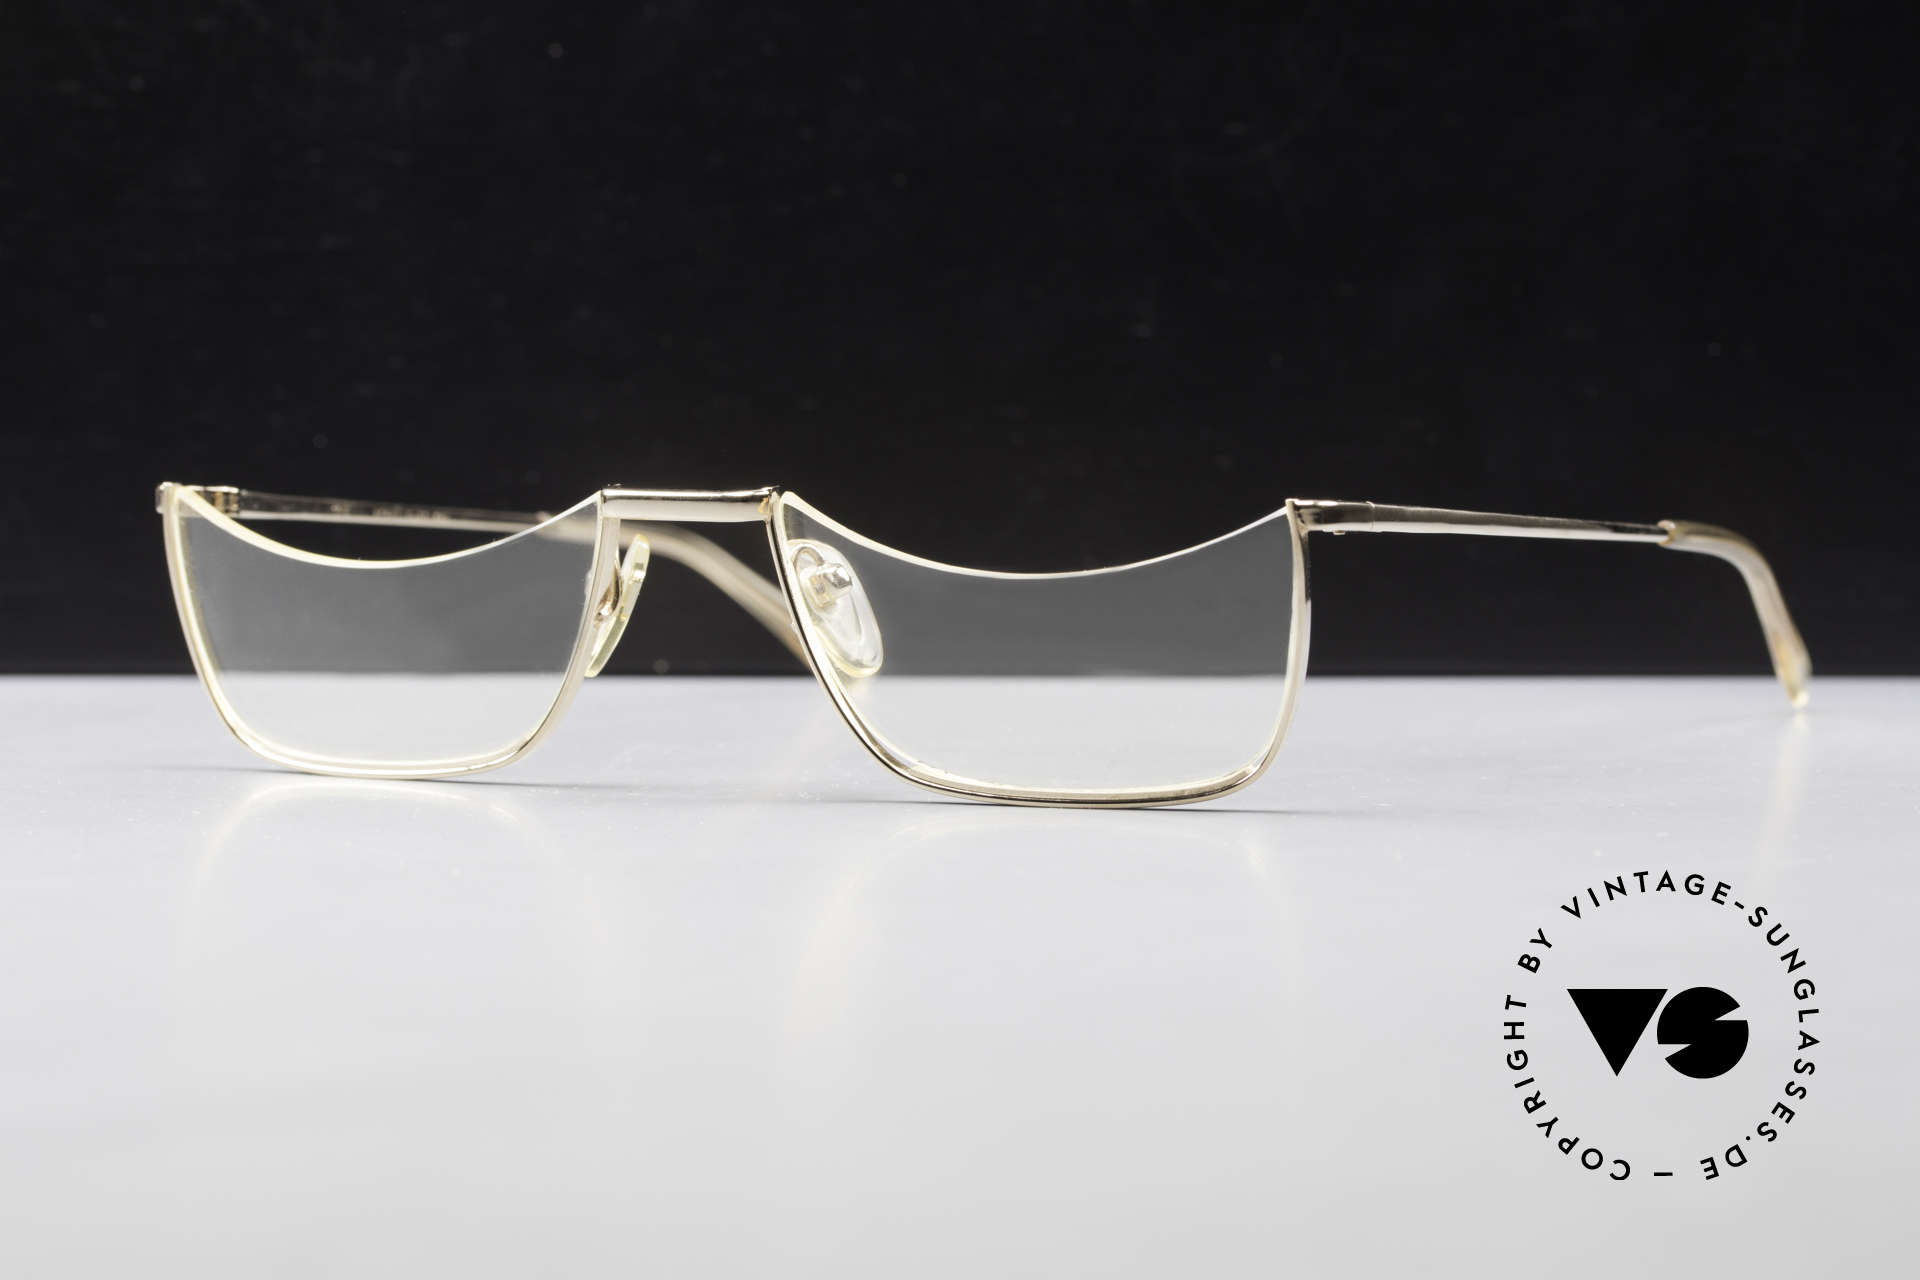 Norville Polymil Antique Reading Glasses 60's, real antique reading eyeglasses from the 1960's, Made for Men